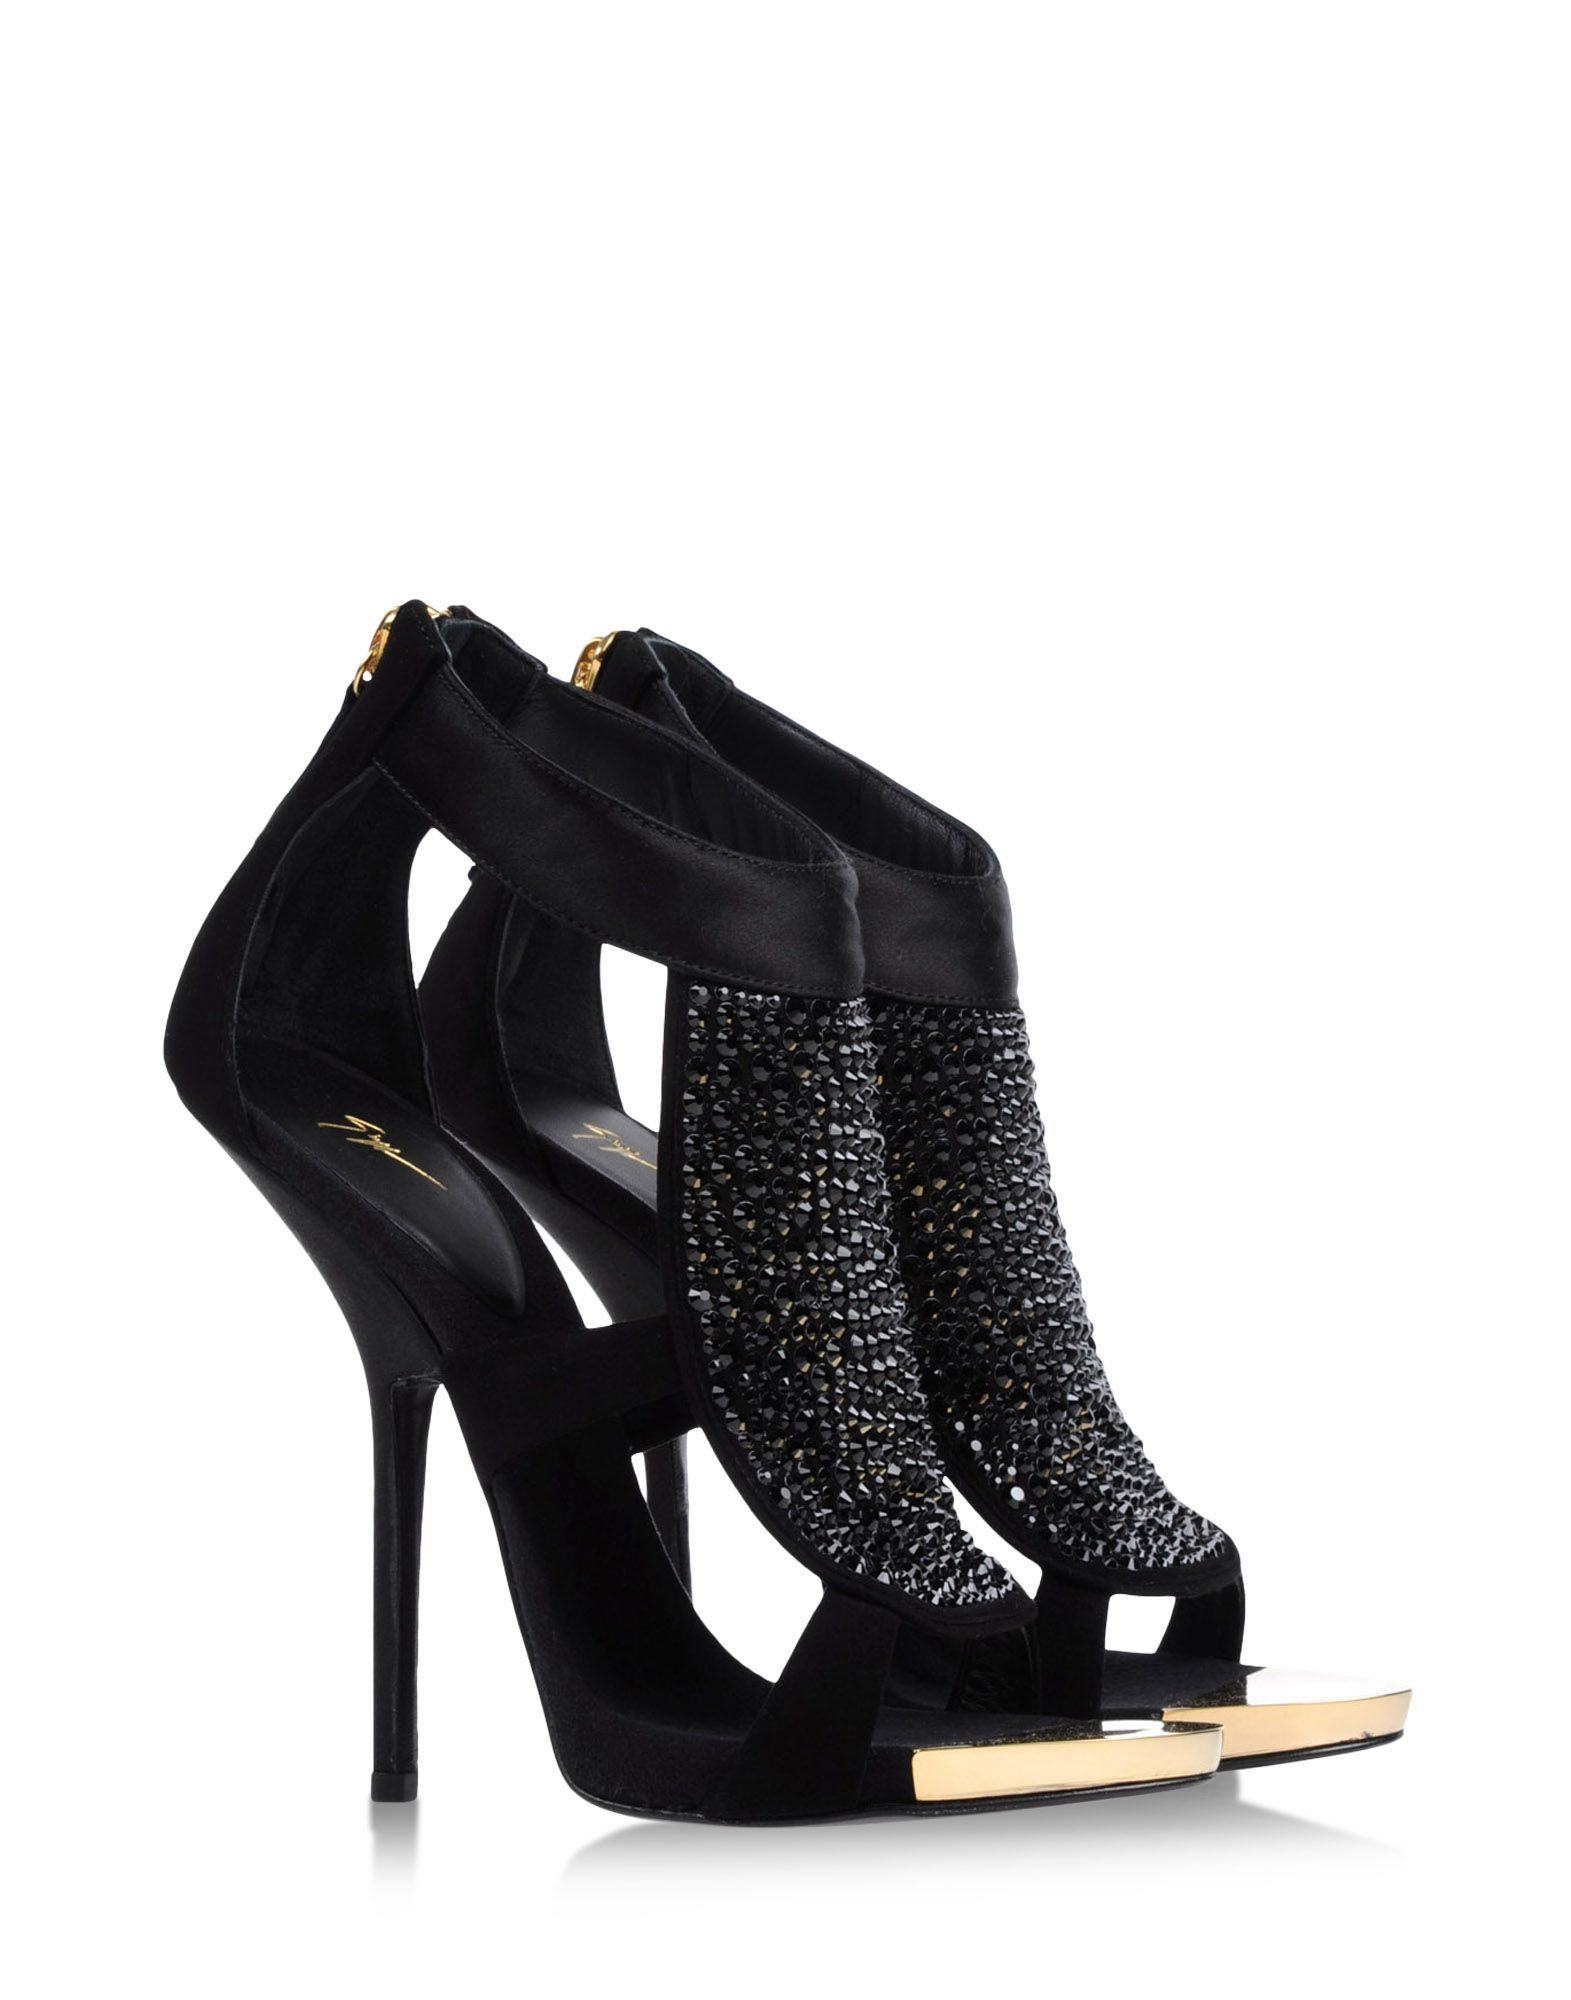 Shop online Women's Giuseppe Zanotti Design at shoescribe.com ...